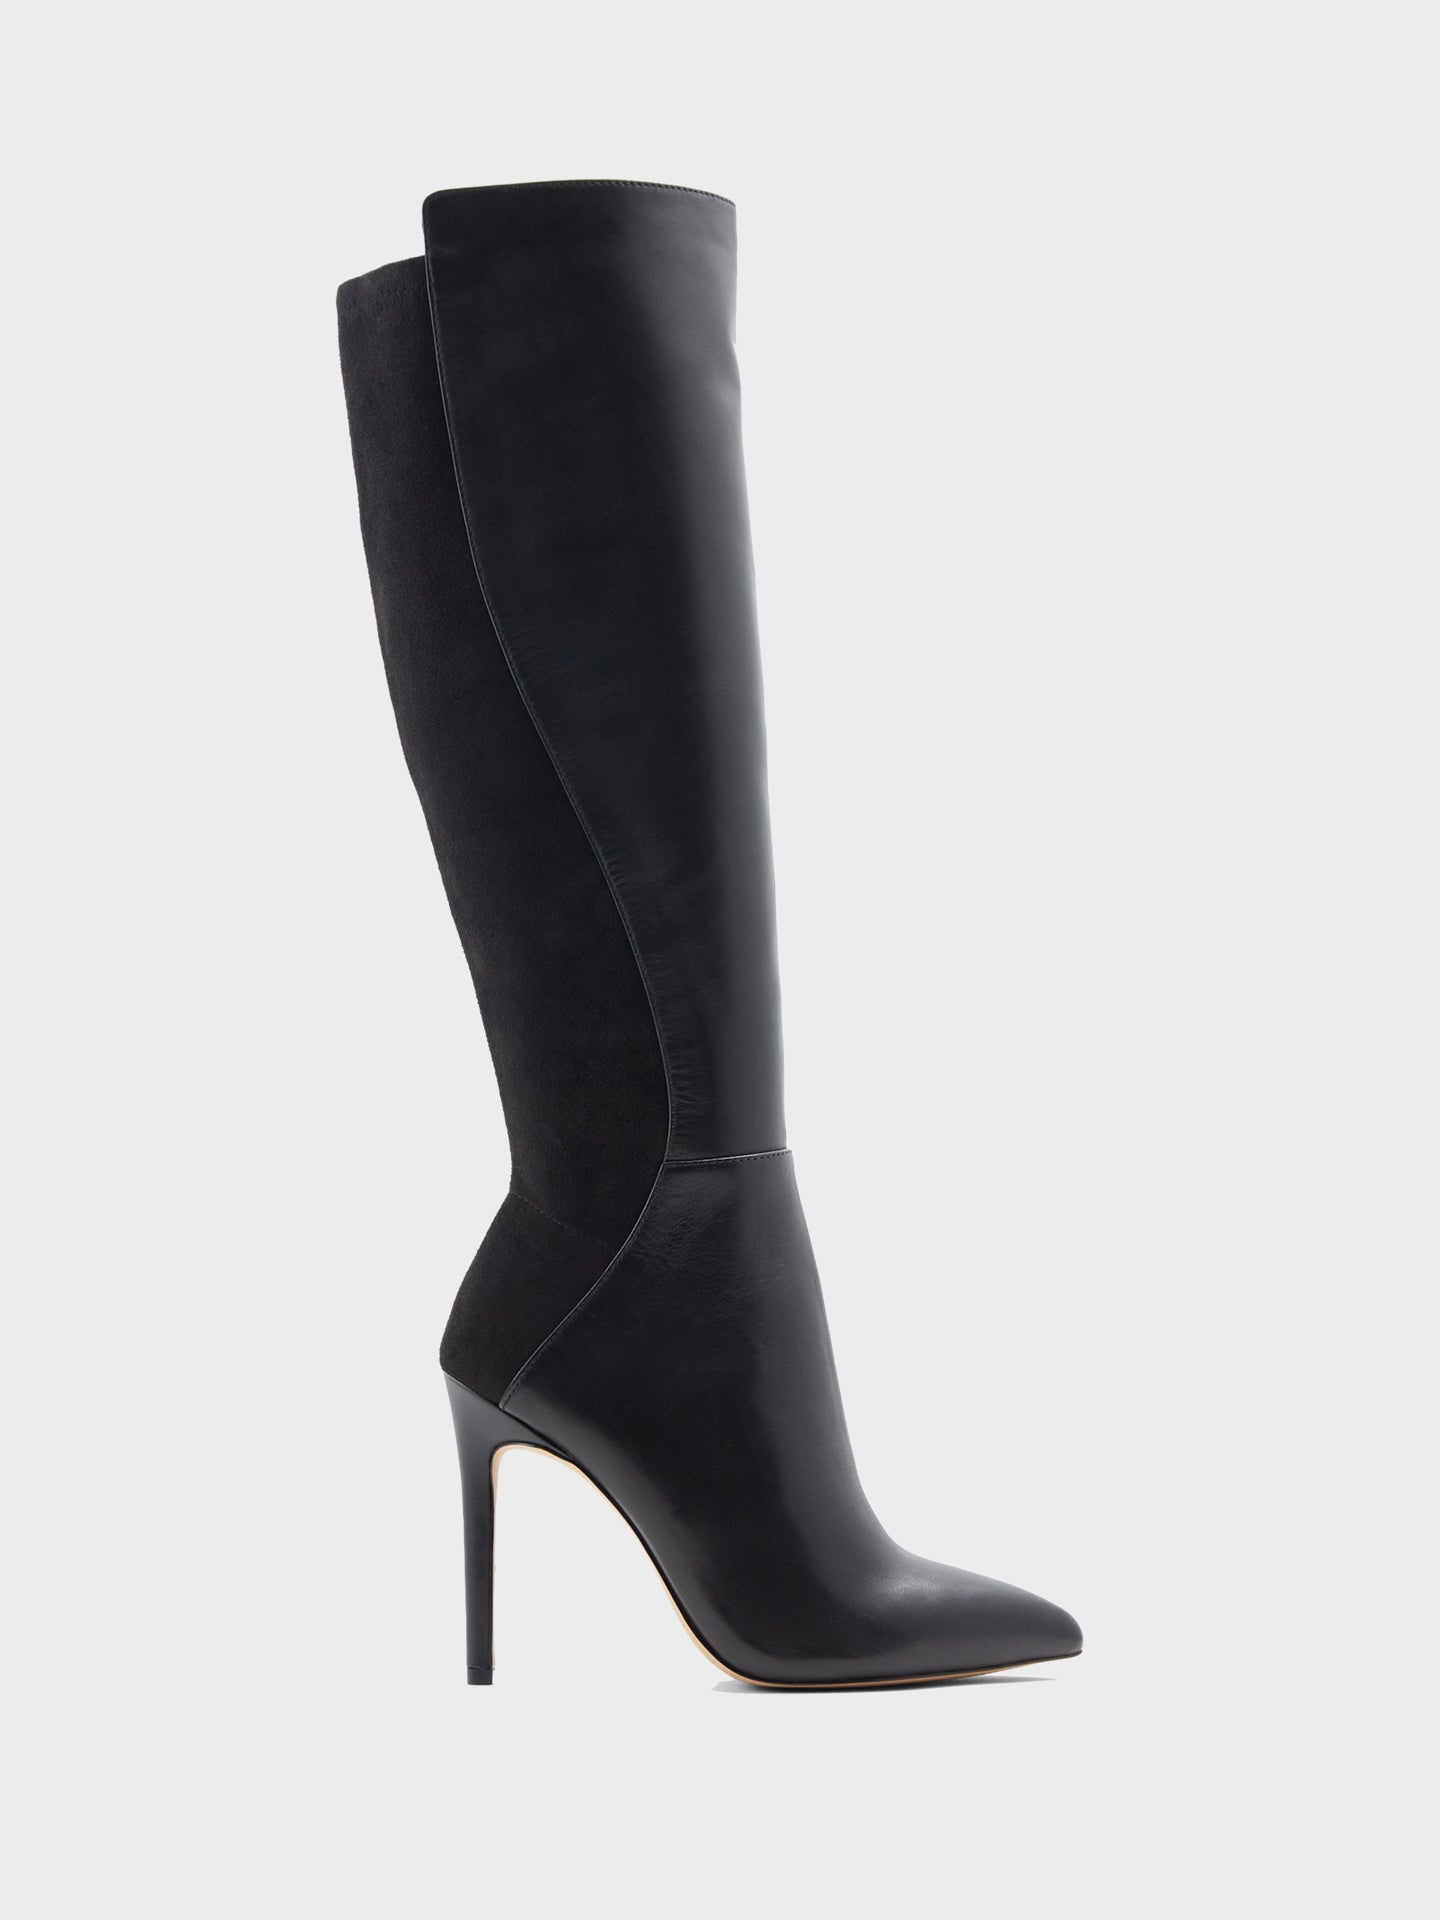 Aldo Black Pointed Toe Boots